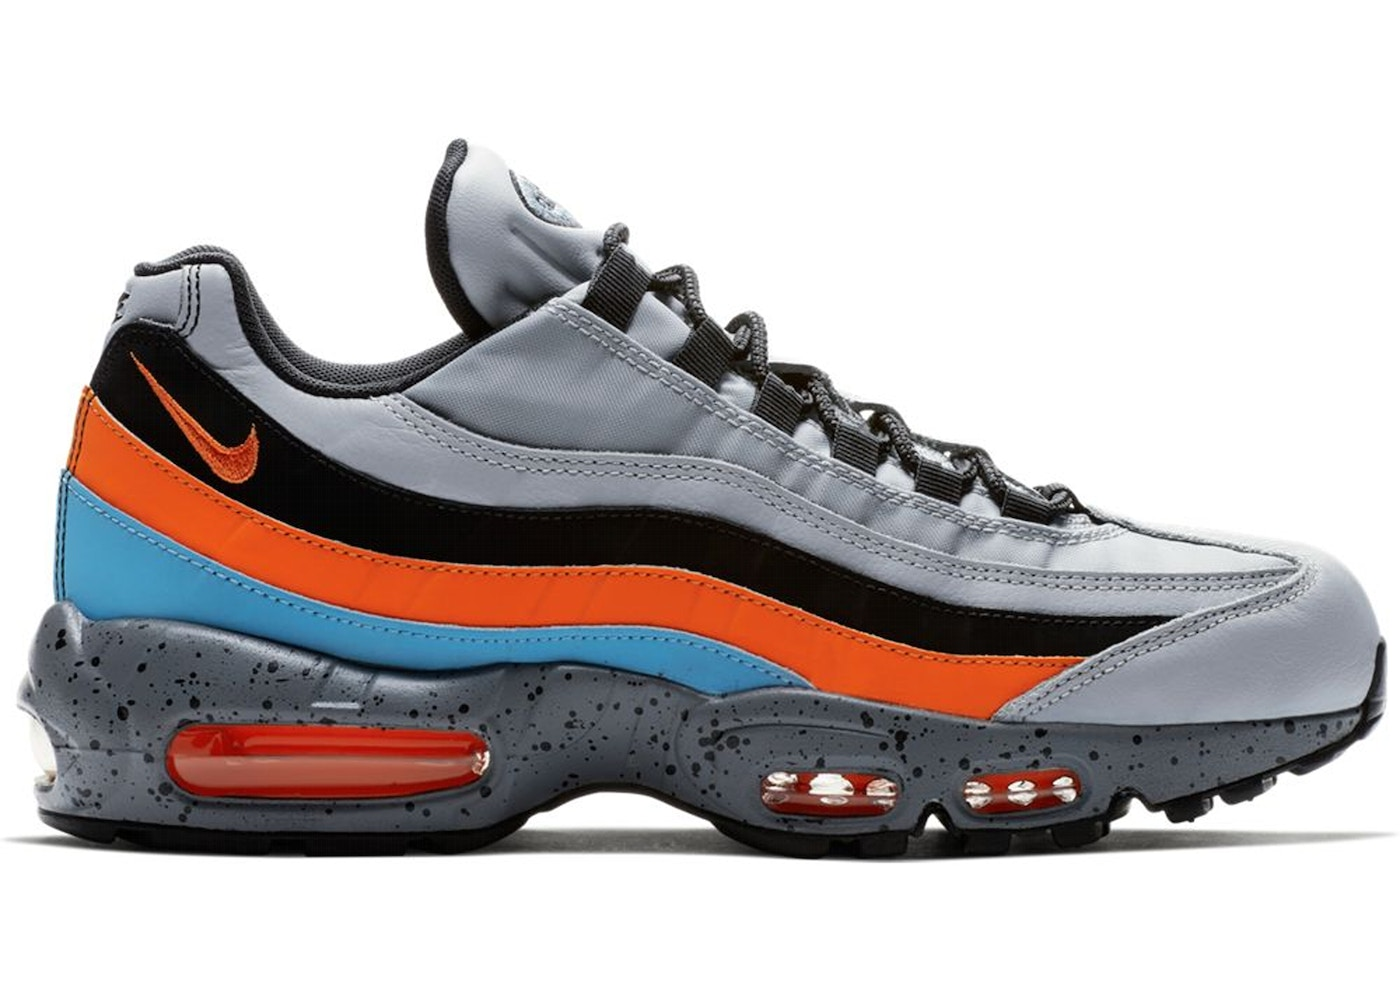 timeless design a7bf3 adf0e Air Max 95 Wolf Grey Safety Orange